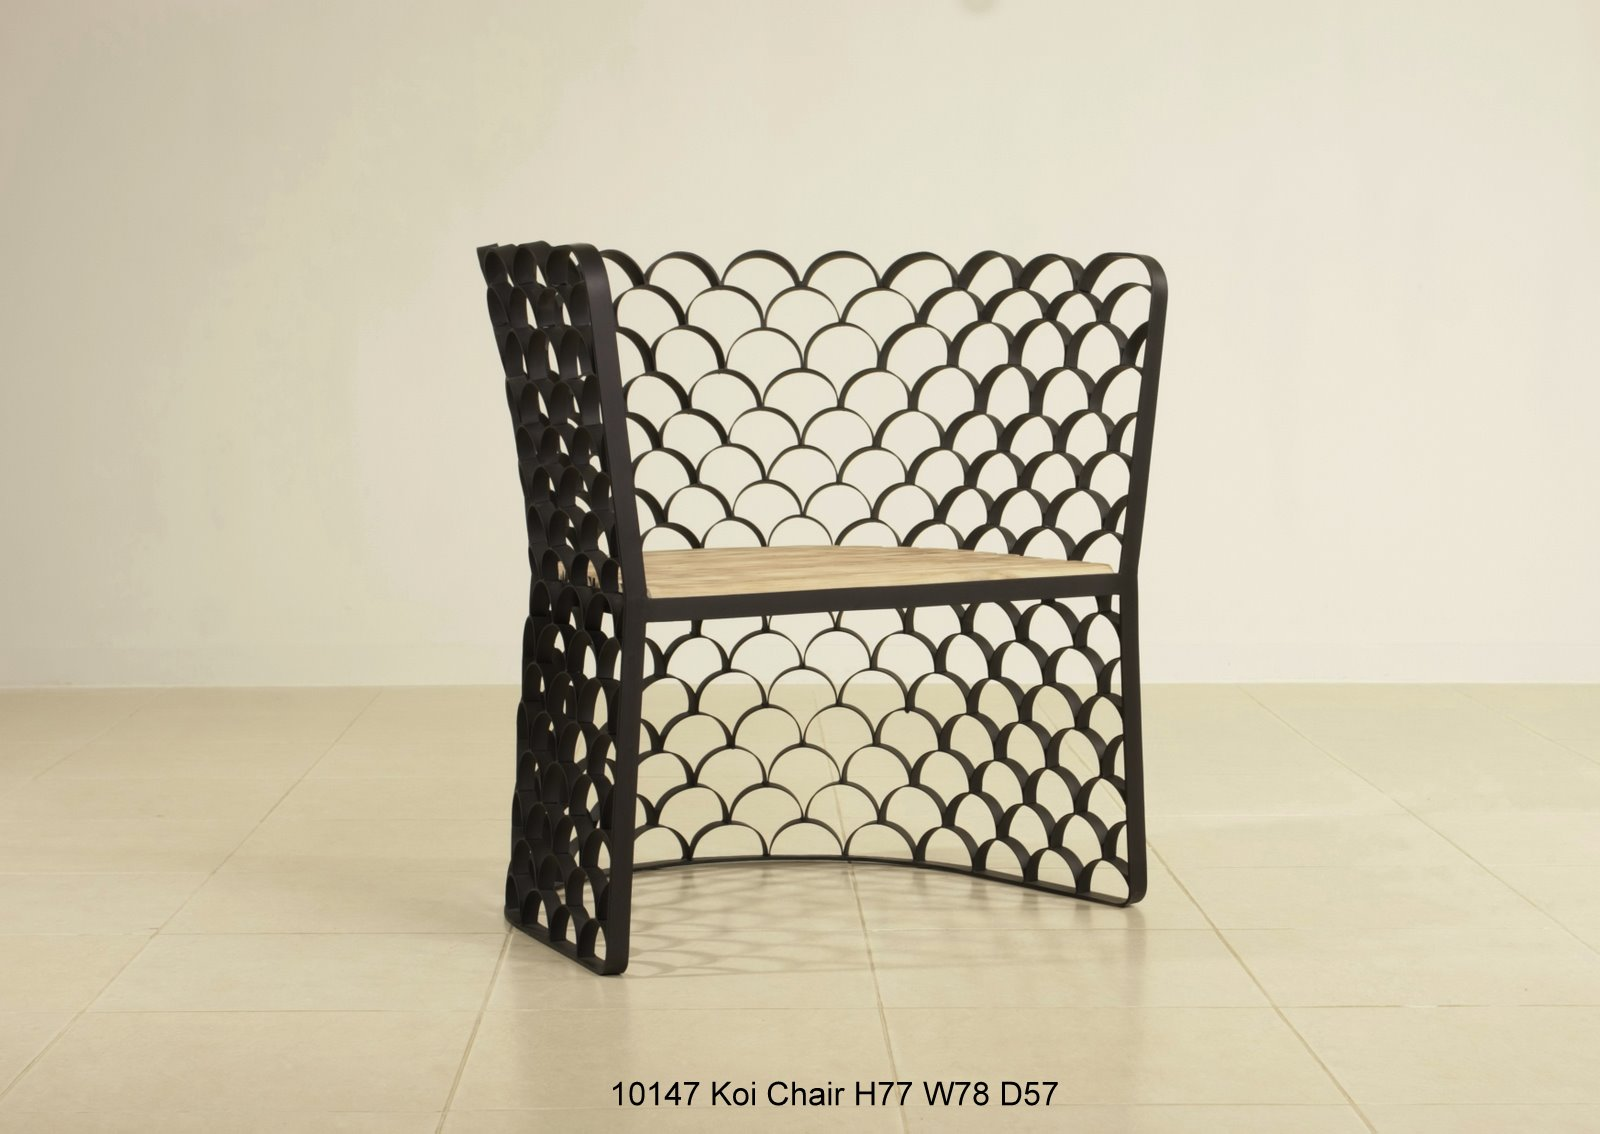 Koi chair_01.jpg